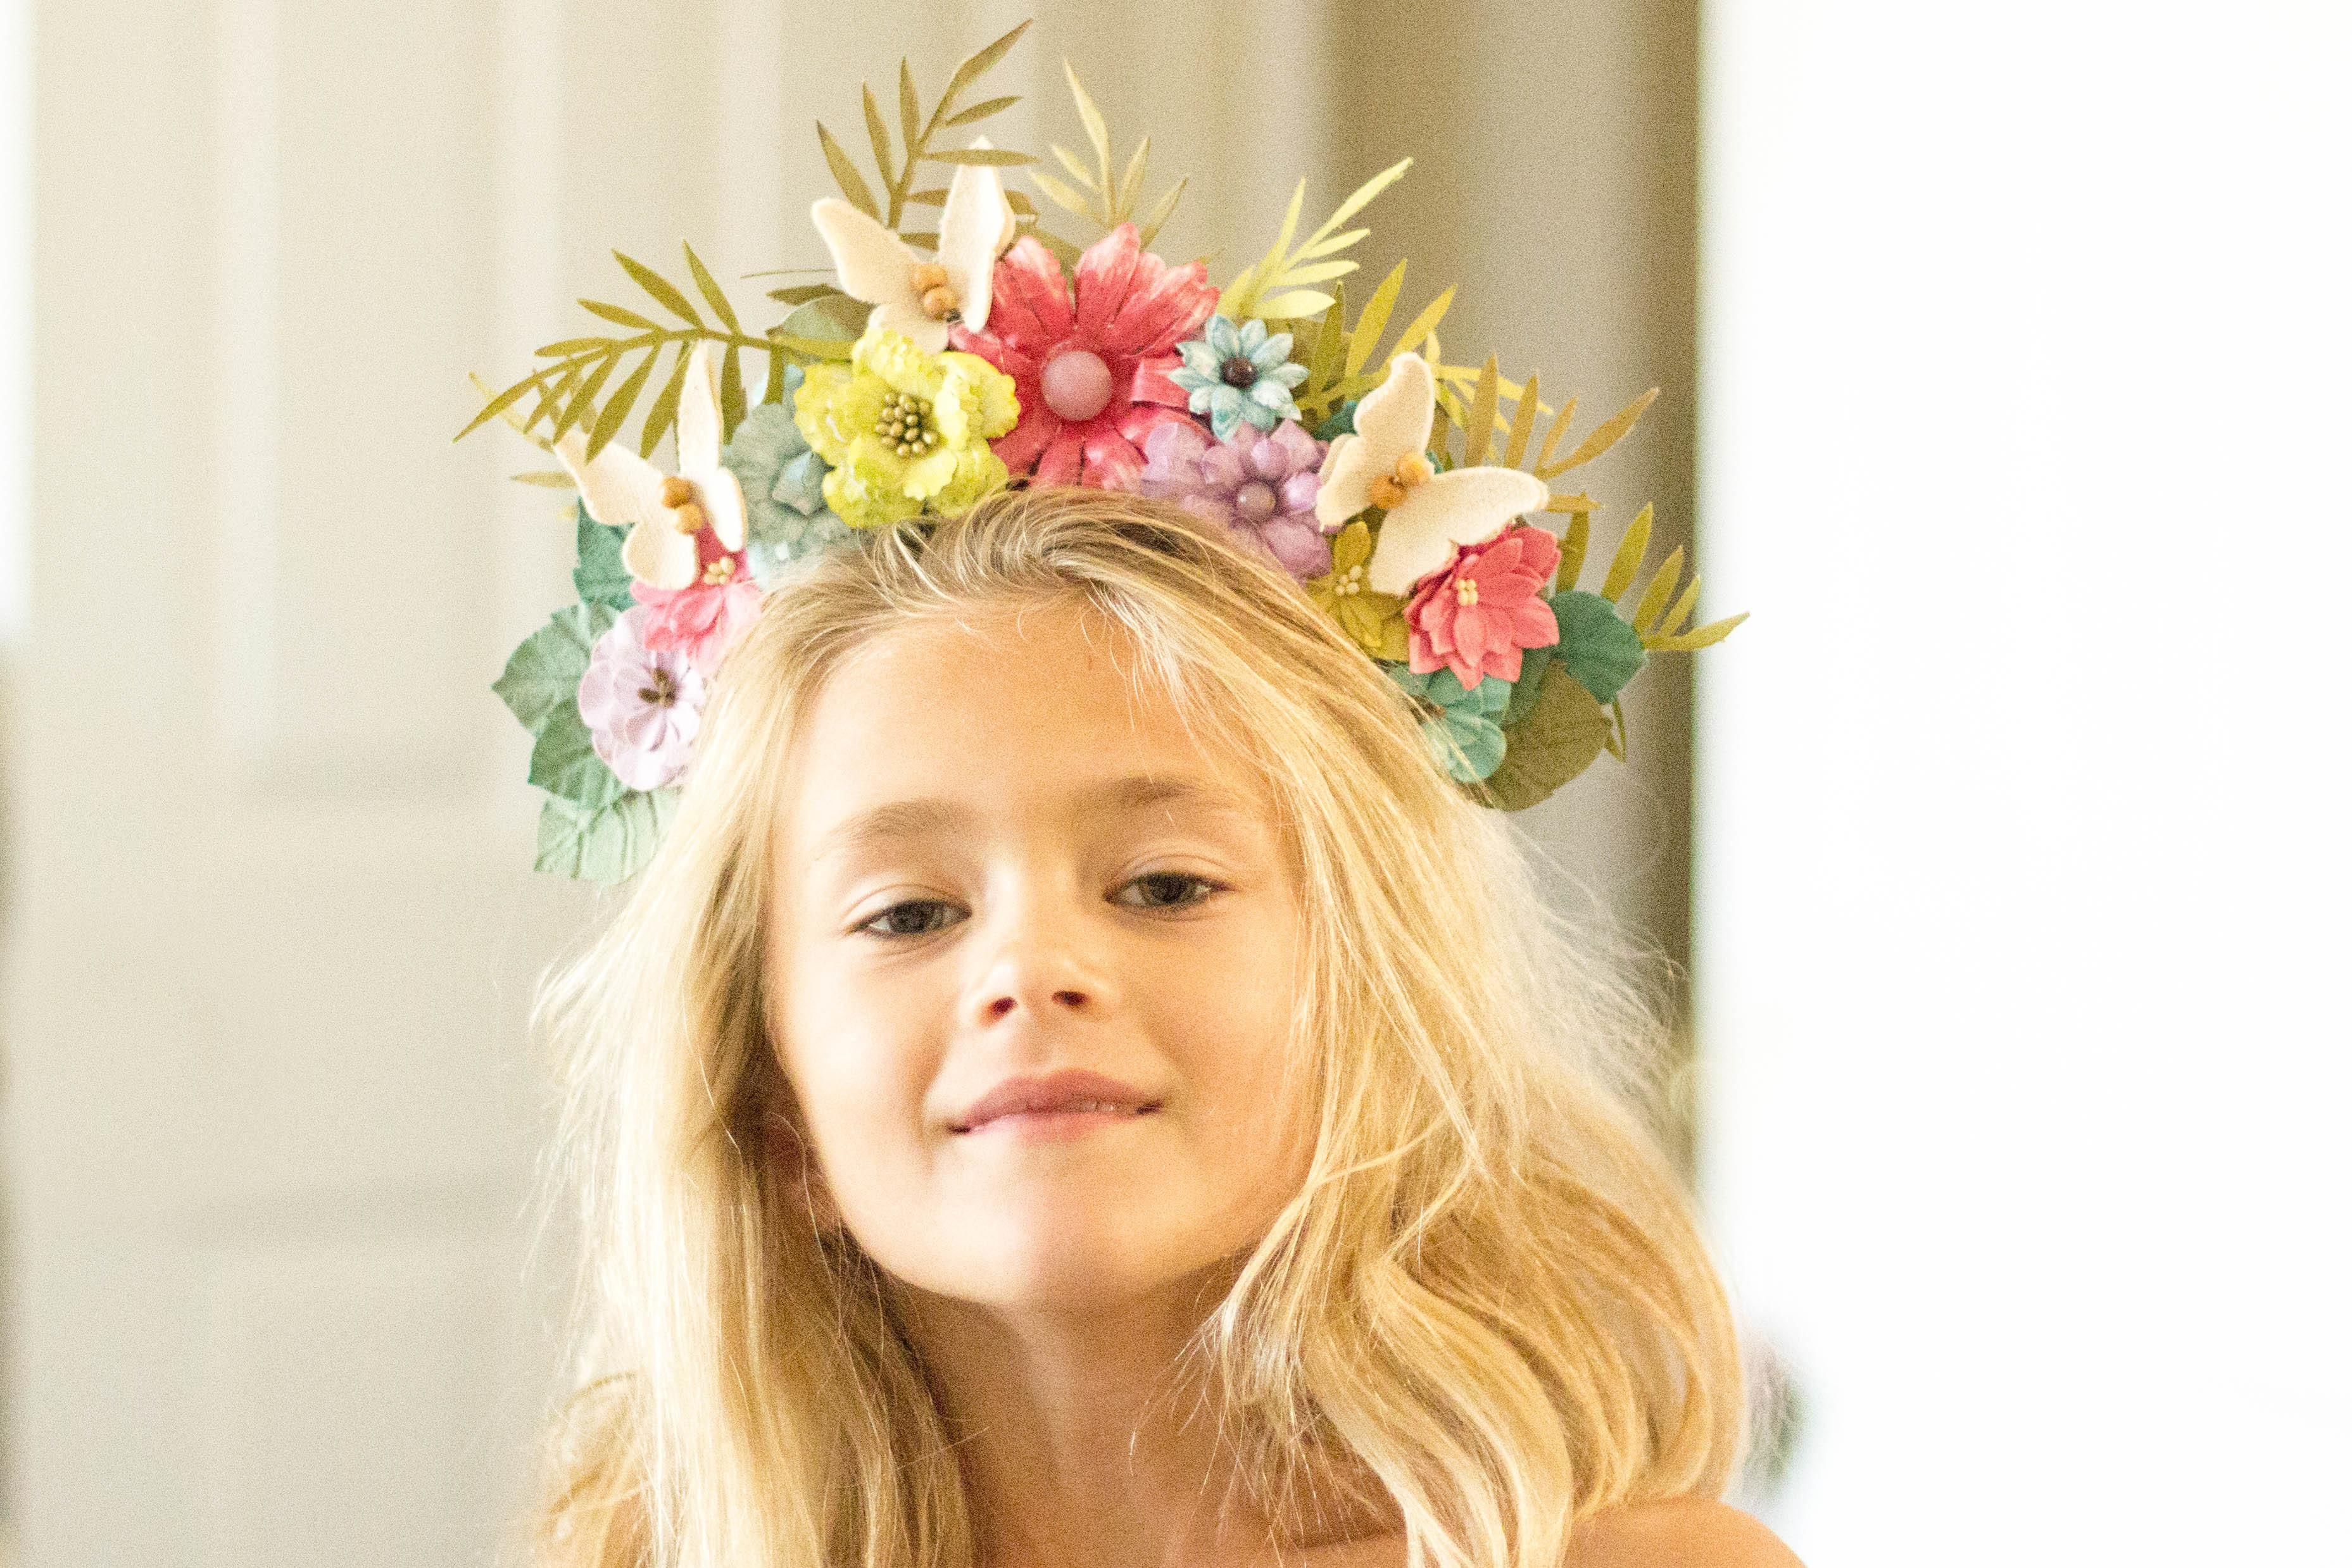 Summer Love Boho Chic Flower Crown Ritzy Parties